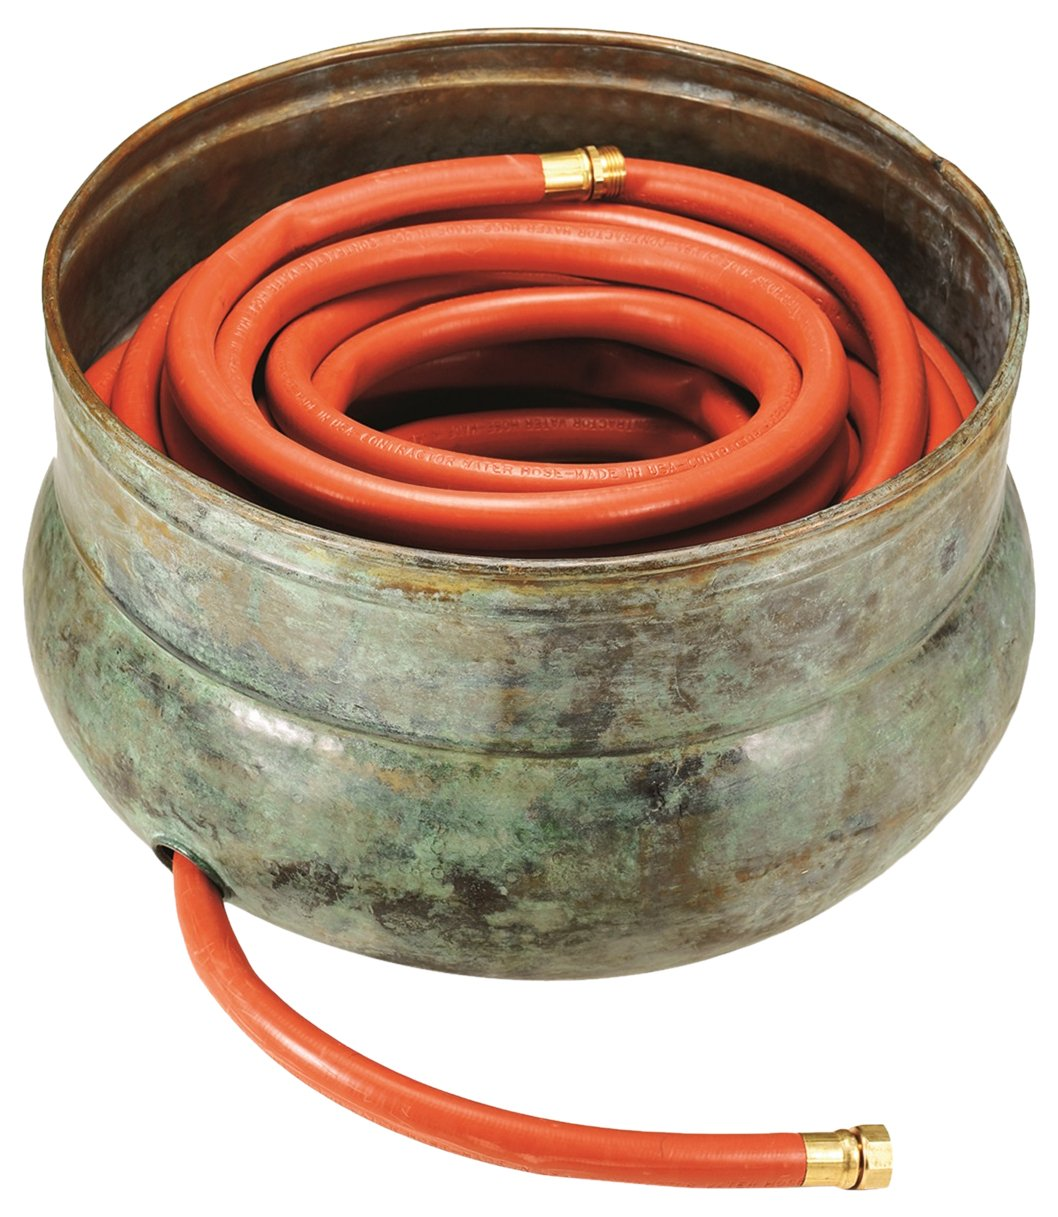 Good Directions 448B Sonoma Hose Pot, Holds Up To 150-Feet of Hose, Brass by Good Directions